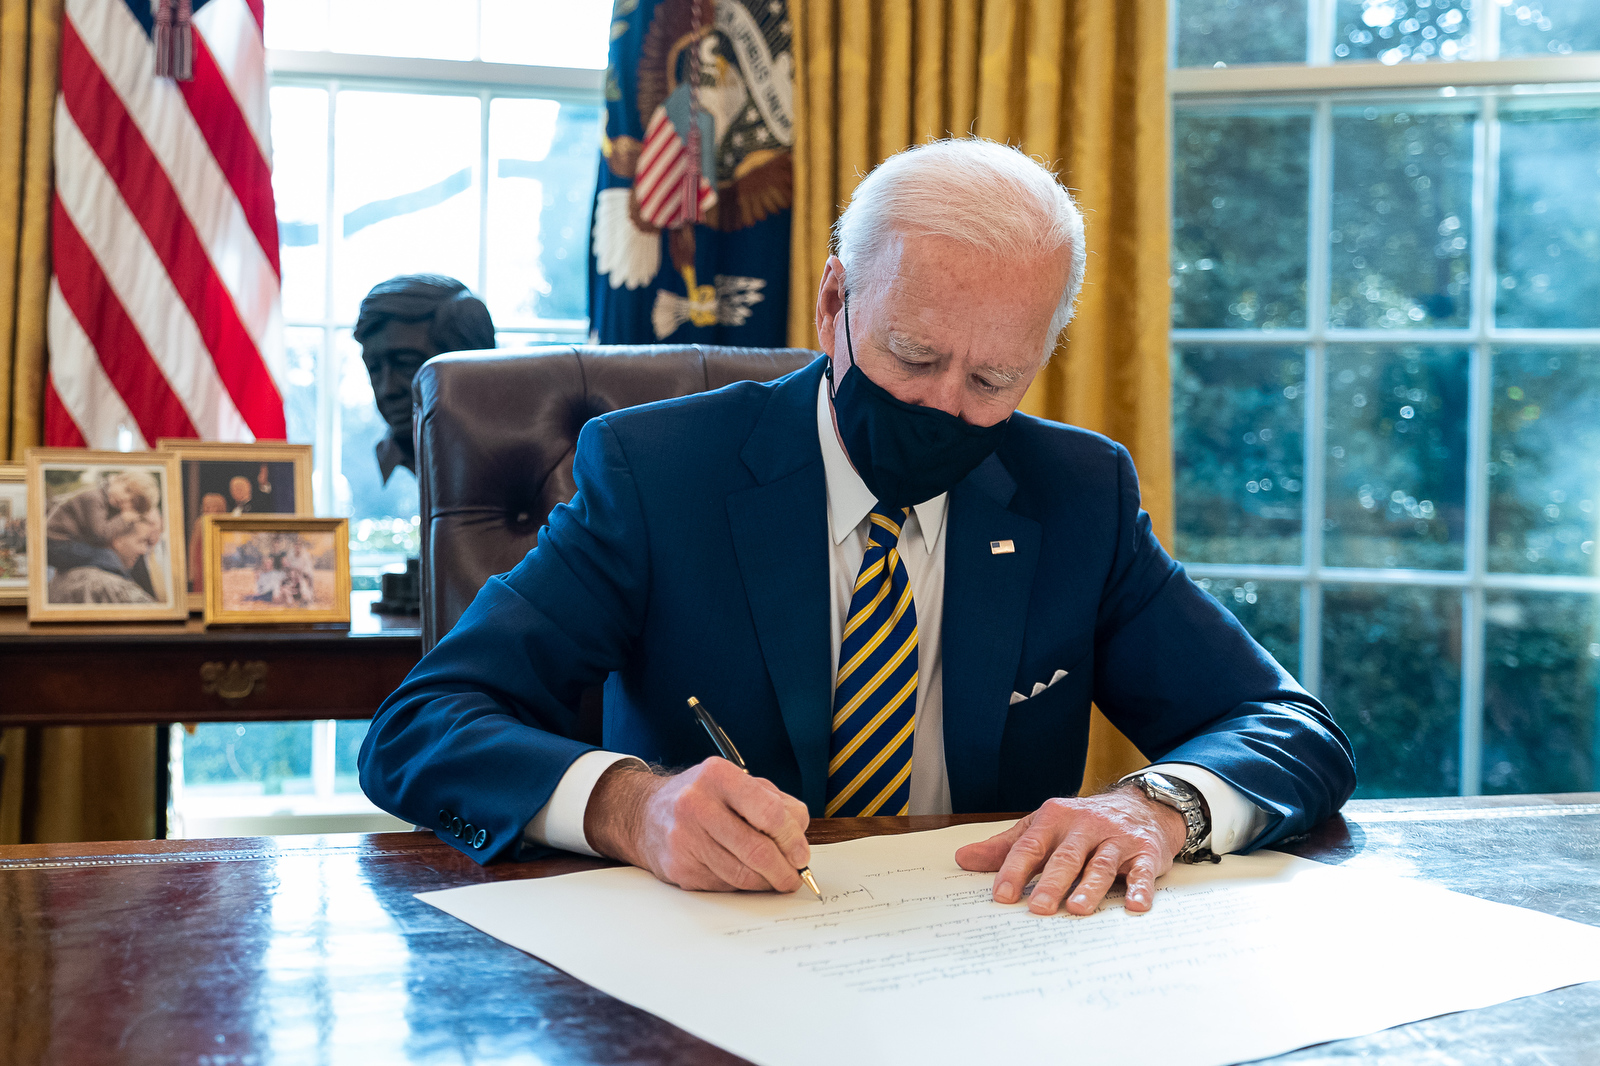 President Biden in the Oval Office